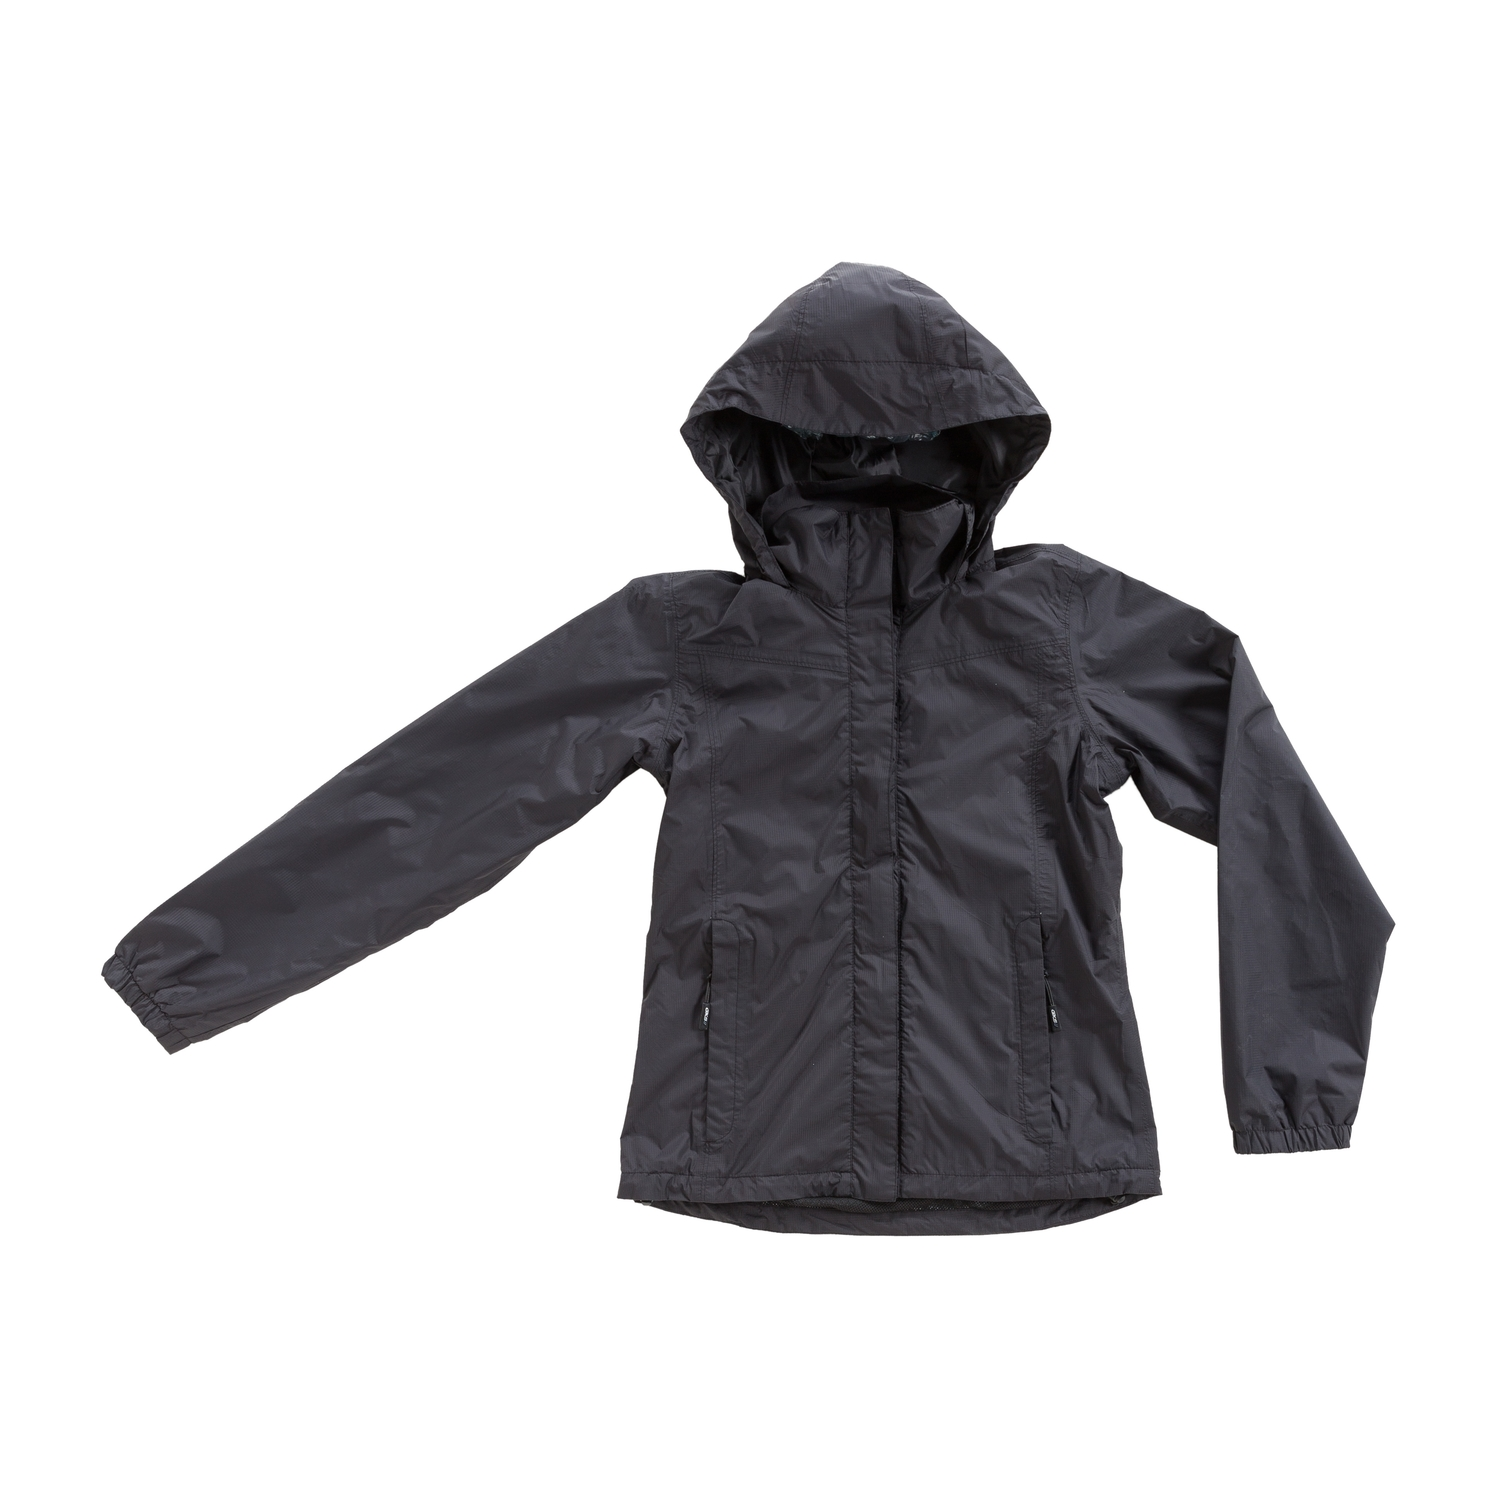 Rainsuit Jacket-100% Nylon 320T-Mesh/Nylon